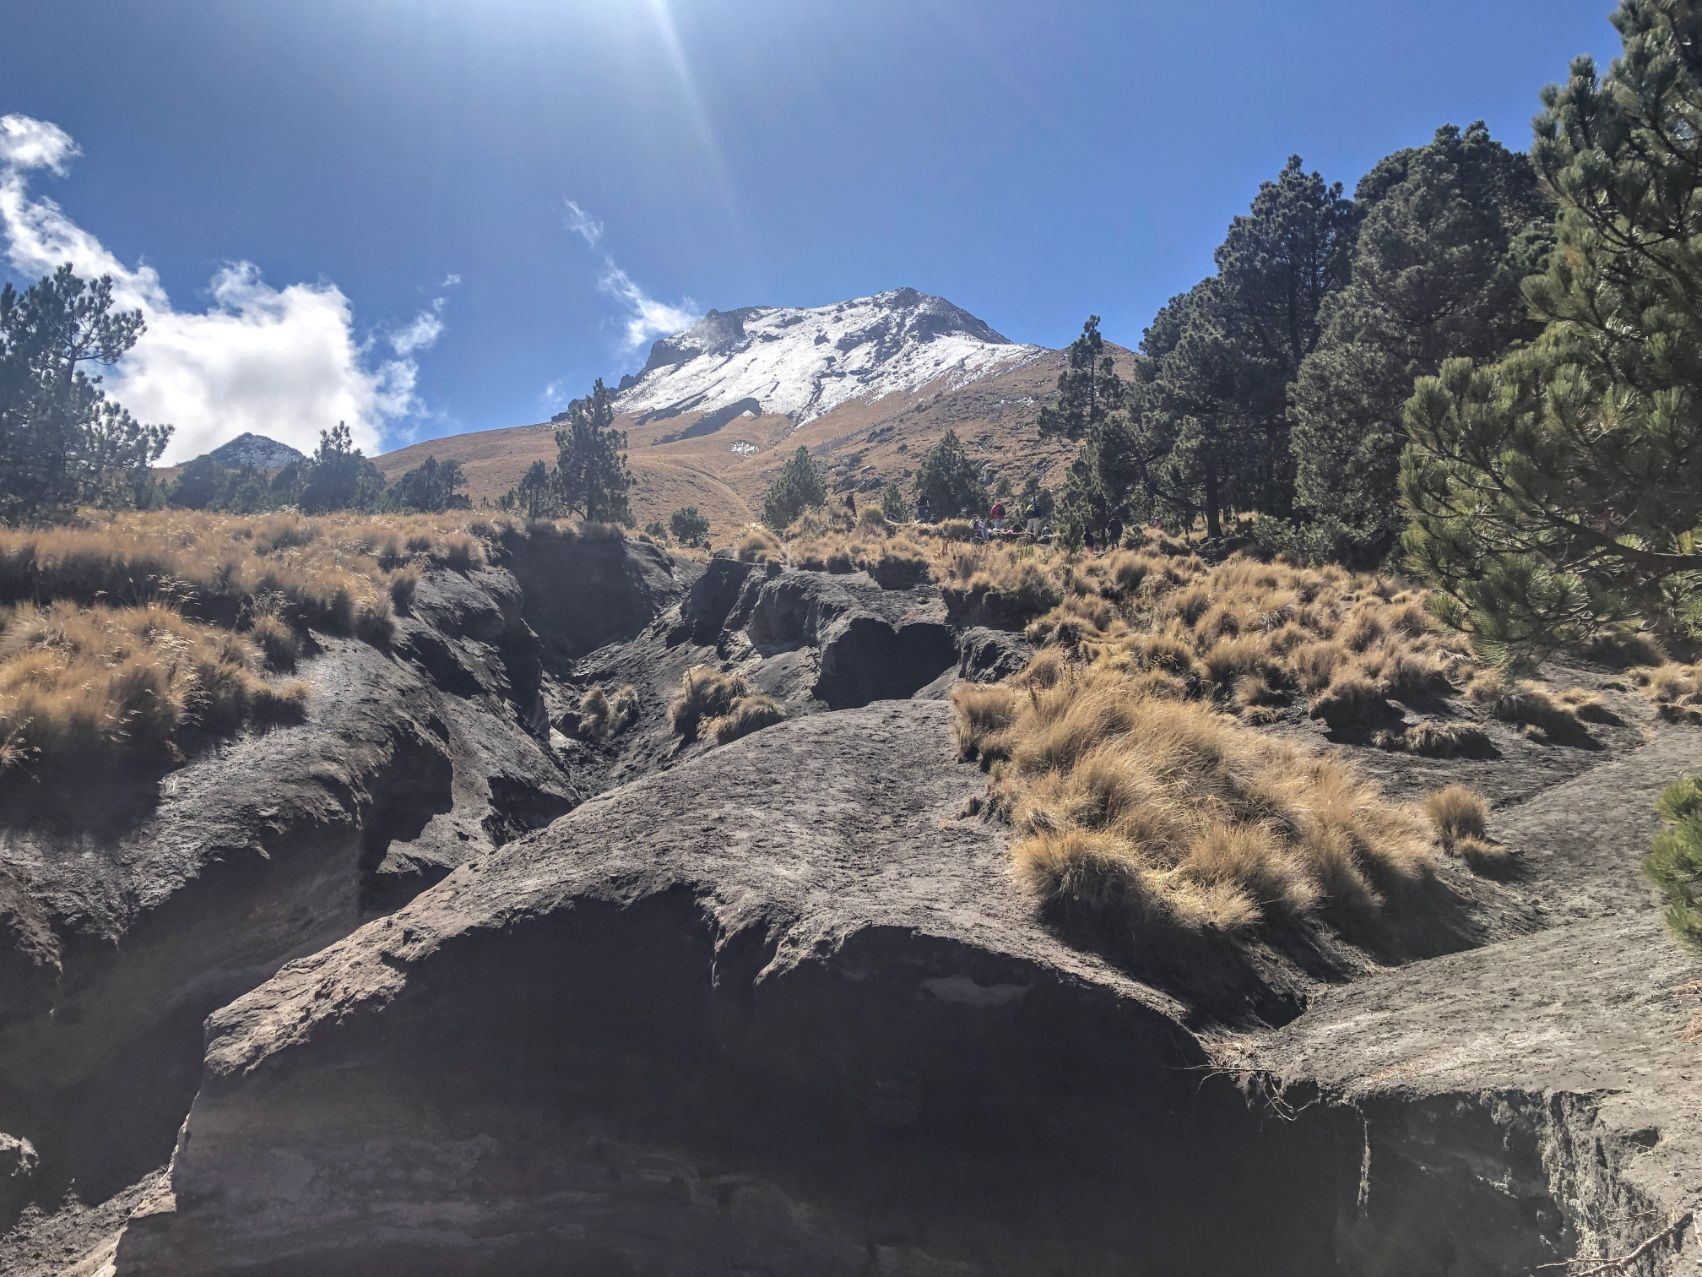 view of snow-caped Malinche from the field at the treeline